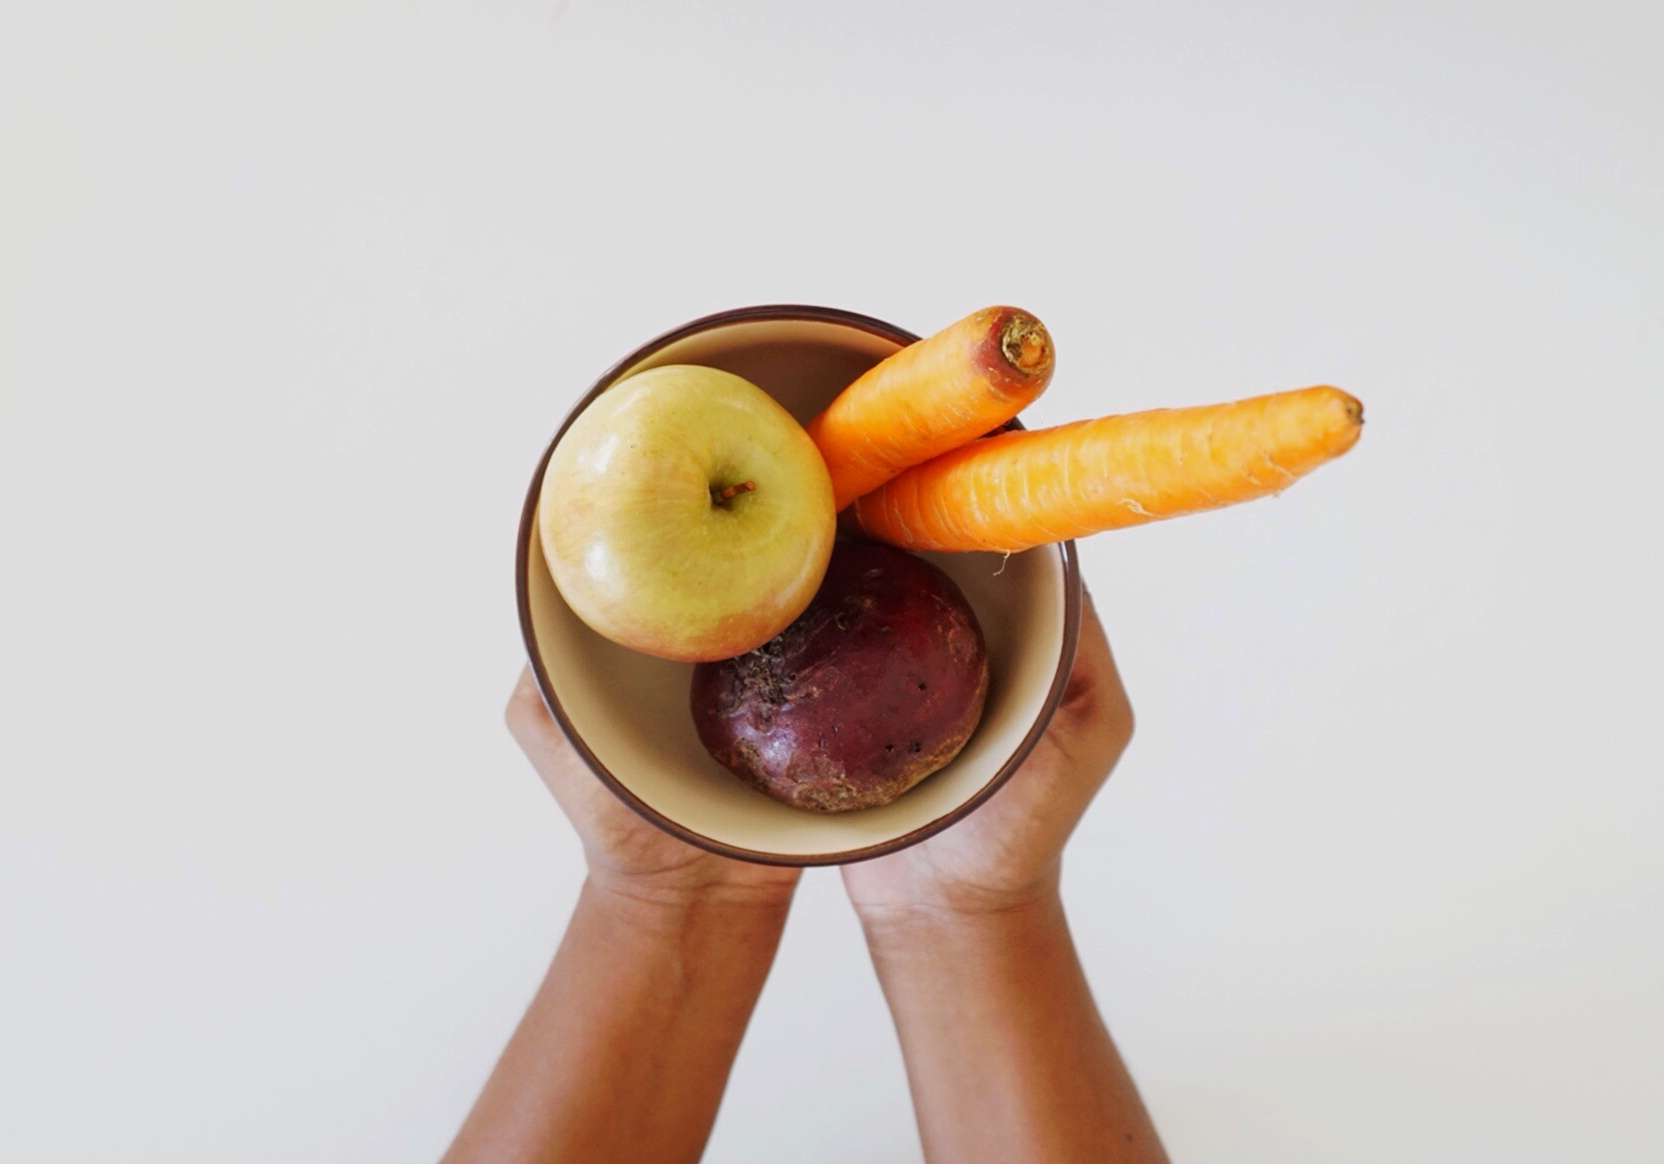 Apple Beetroot and Carrot ~ The Juice of all Juices